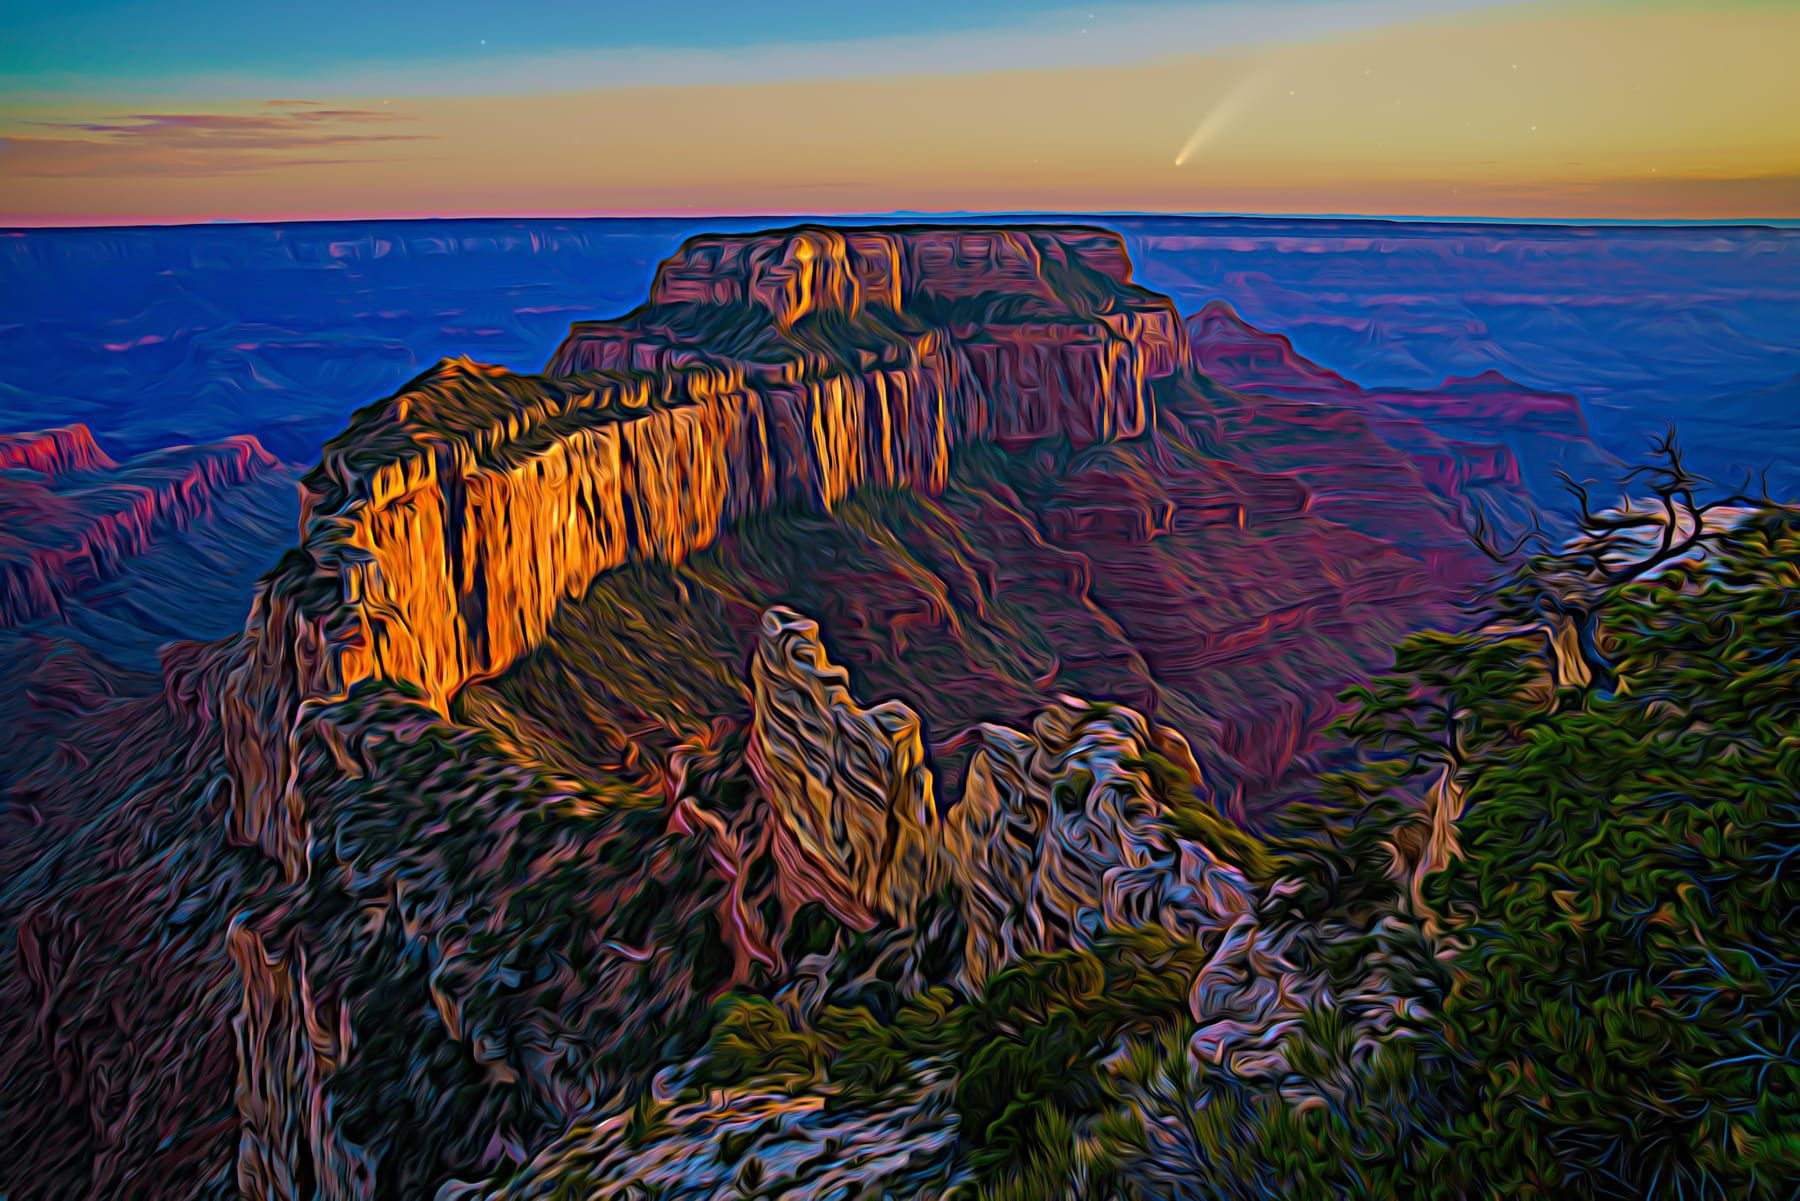 Wotan's Throne fantasy landscape in Grand Canyon with a comet and expressionistic colors.